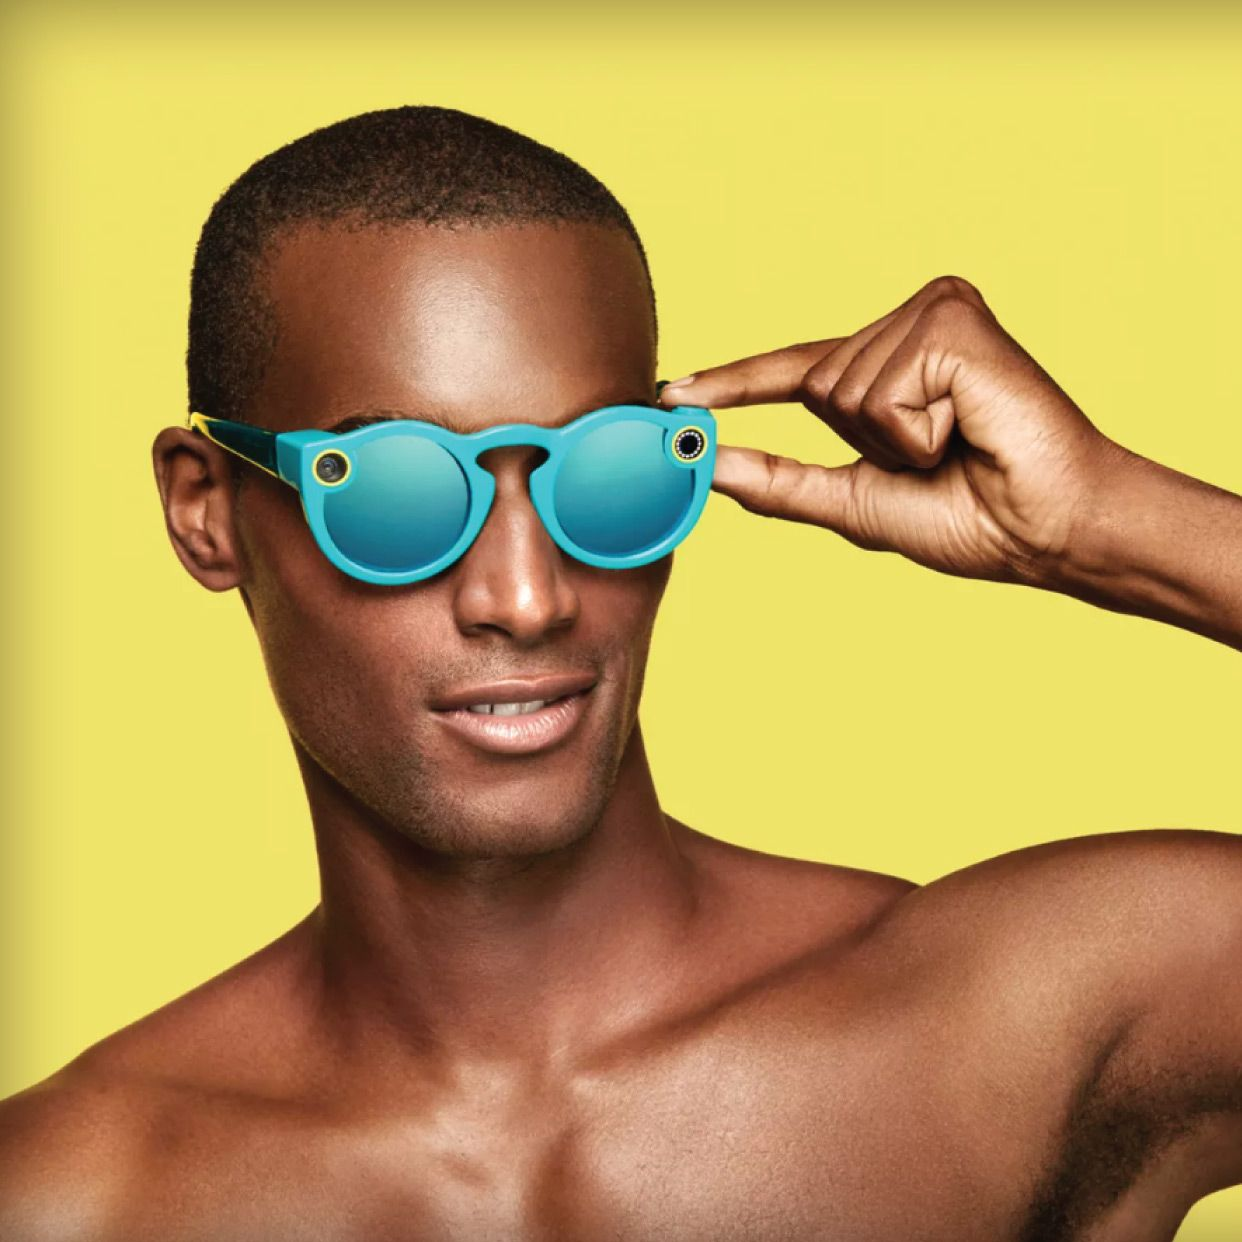 Here's how Snapchat's new Spectacles will work Moon icon